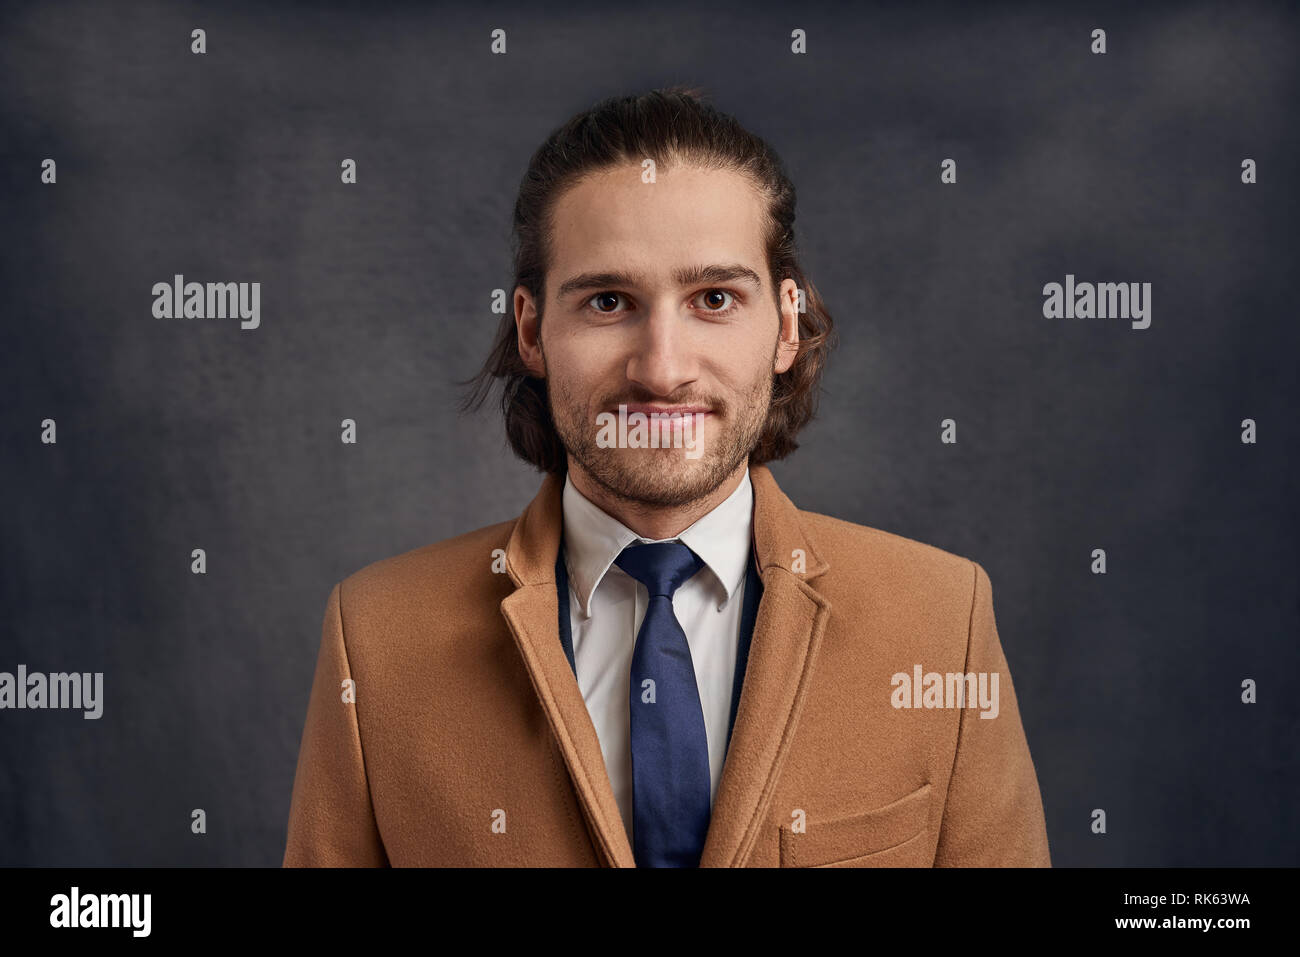 fb7b8e5b29e Portrait of a stylish young handsome long-haired unshaven man in light  brown blazer and